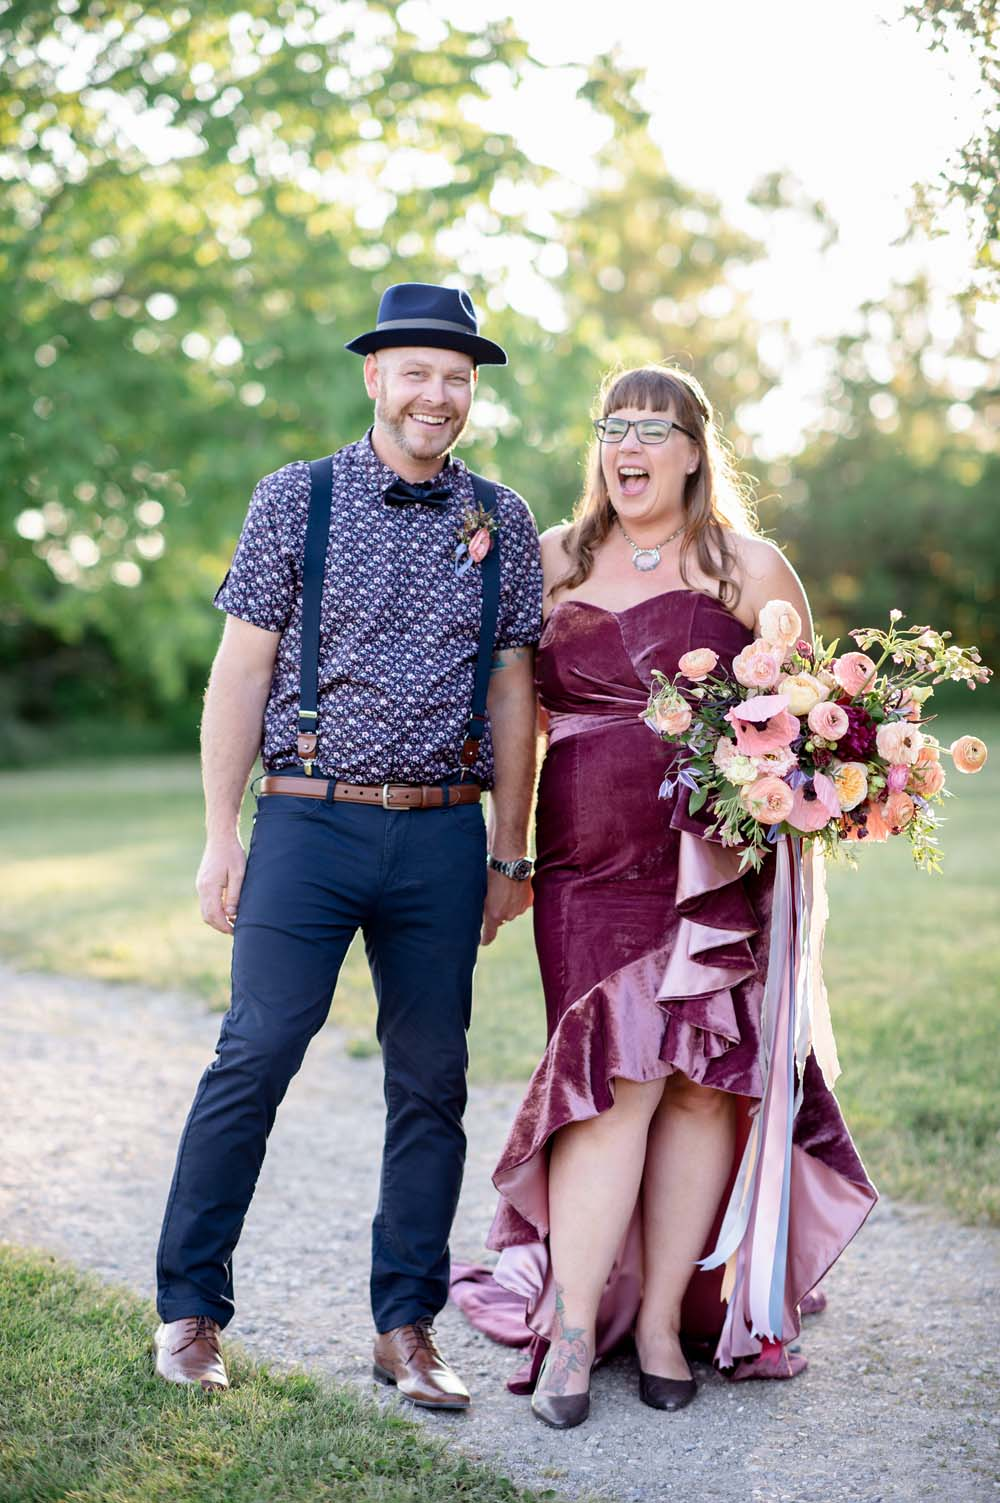 A Quirky Non-Traditional Wedding in Kitchener, Ontario - Mr and Mrs Sharpe